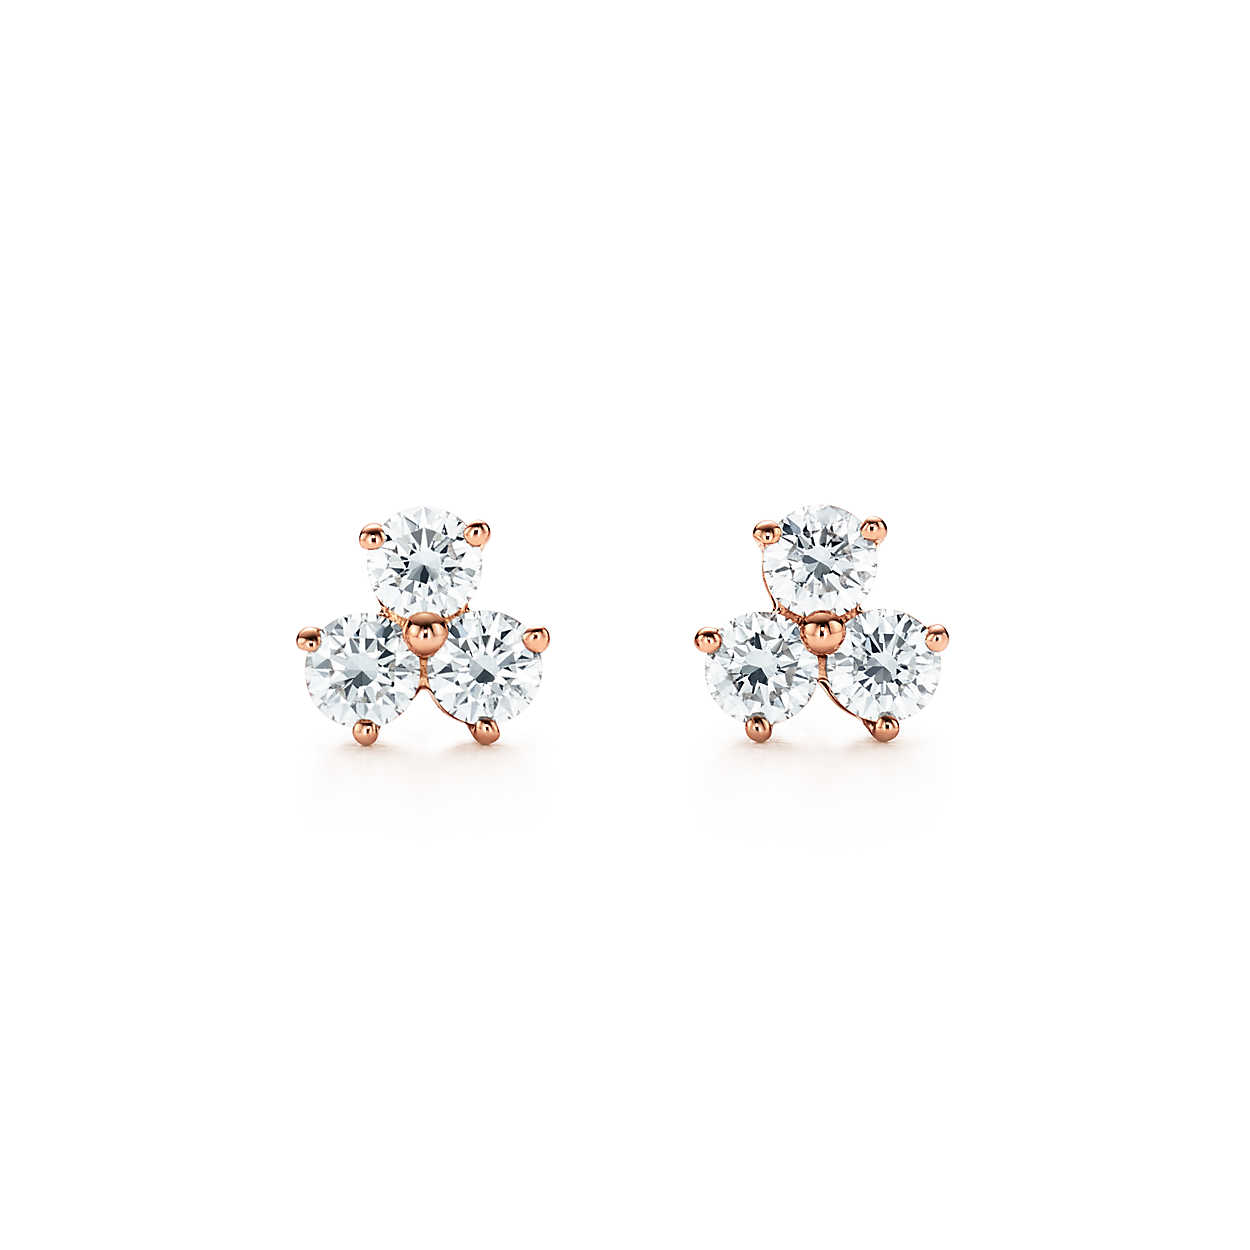 "Wedding Earrings for Every Bride, Tiffany and Co. ""Aria"" Diamond Cluster Earrings"